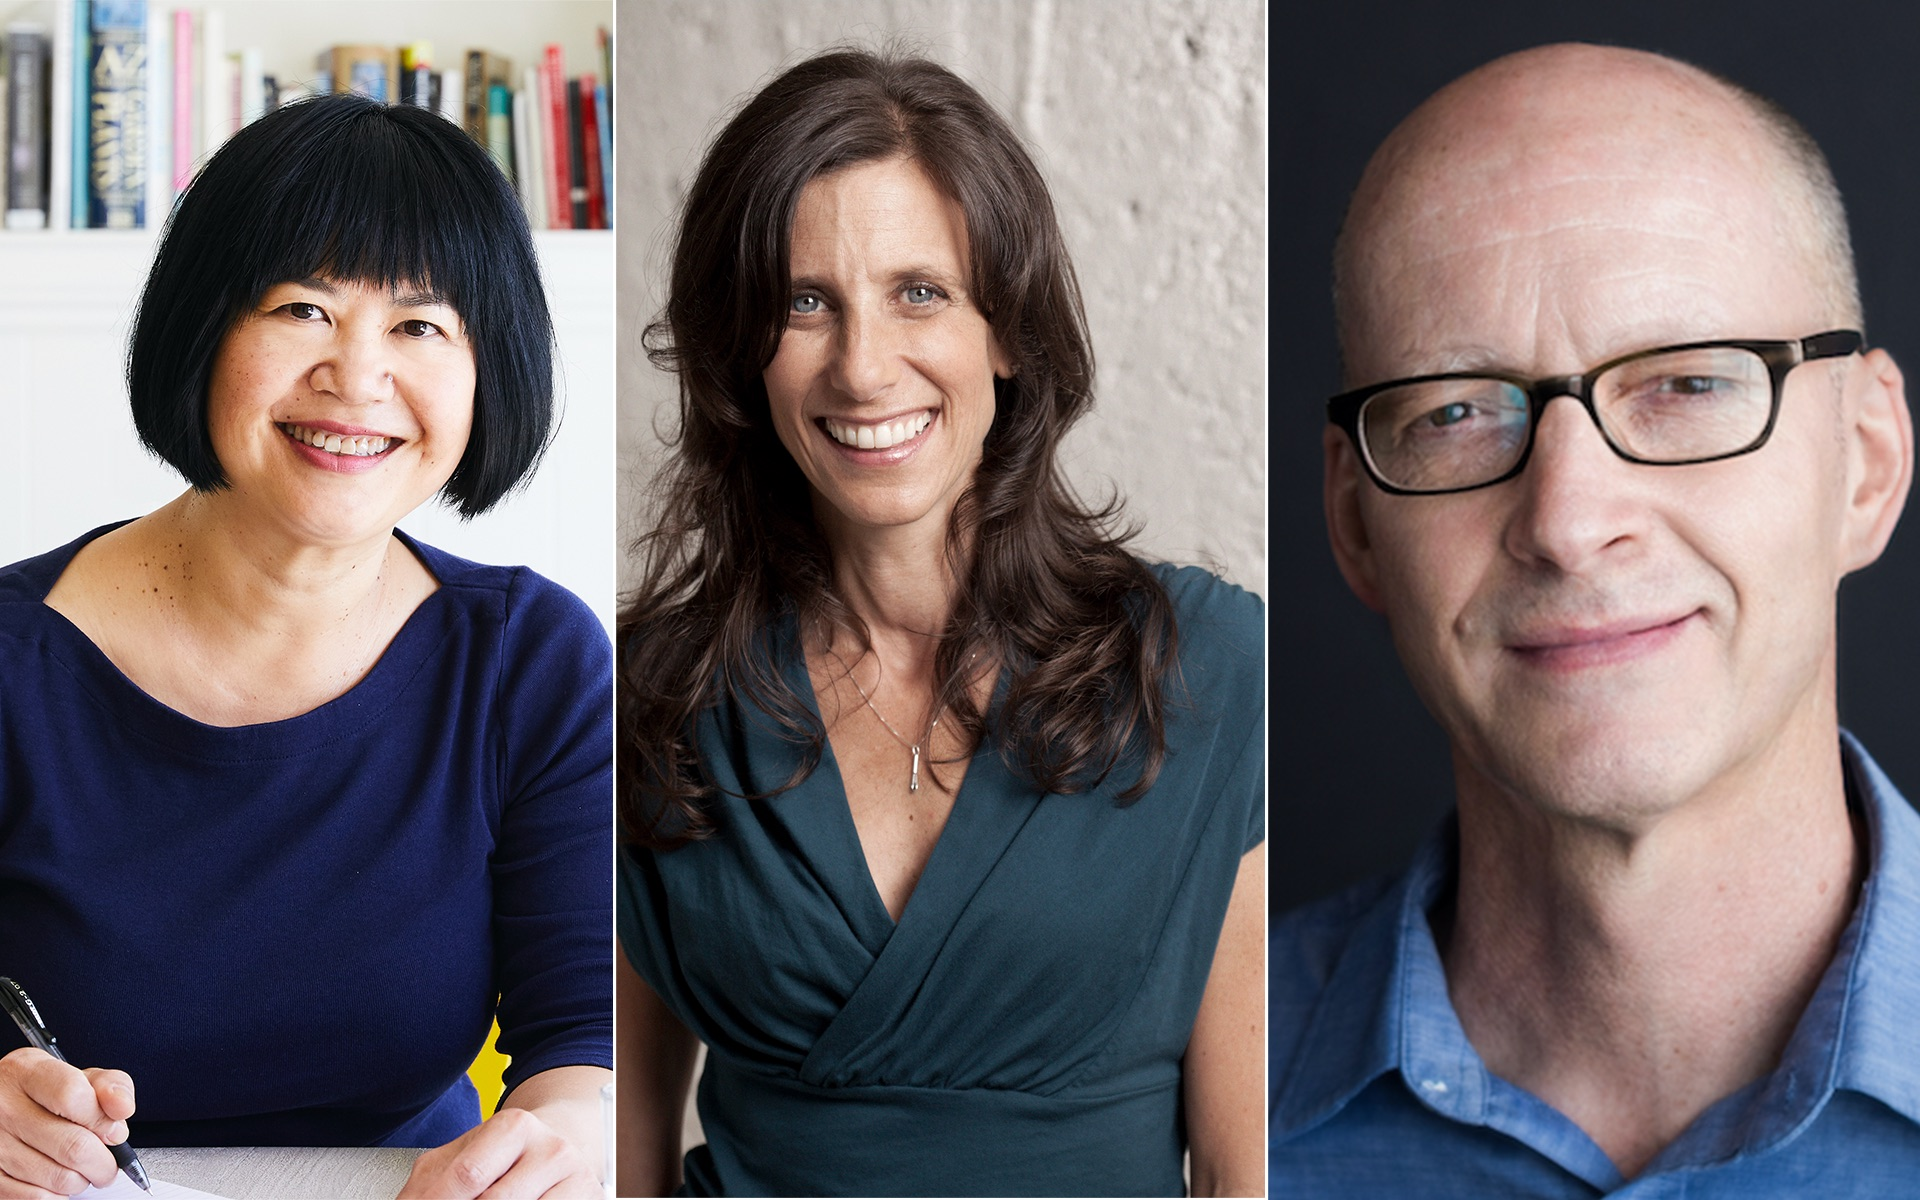 Andrea Nguyen, Jodi Liano, John Birdsall (left to right)